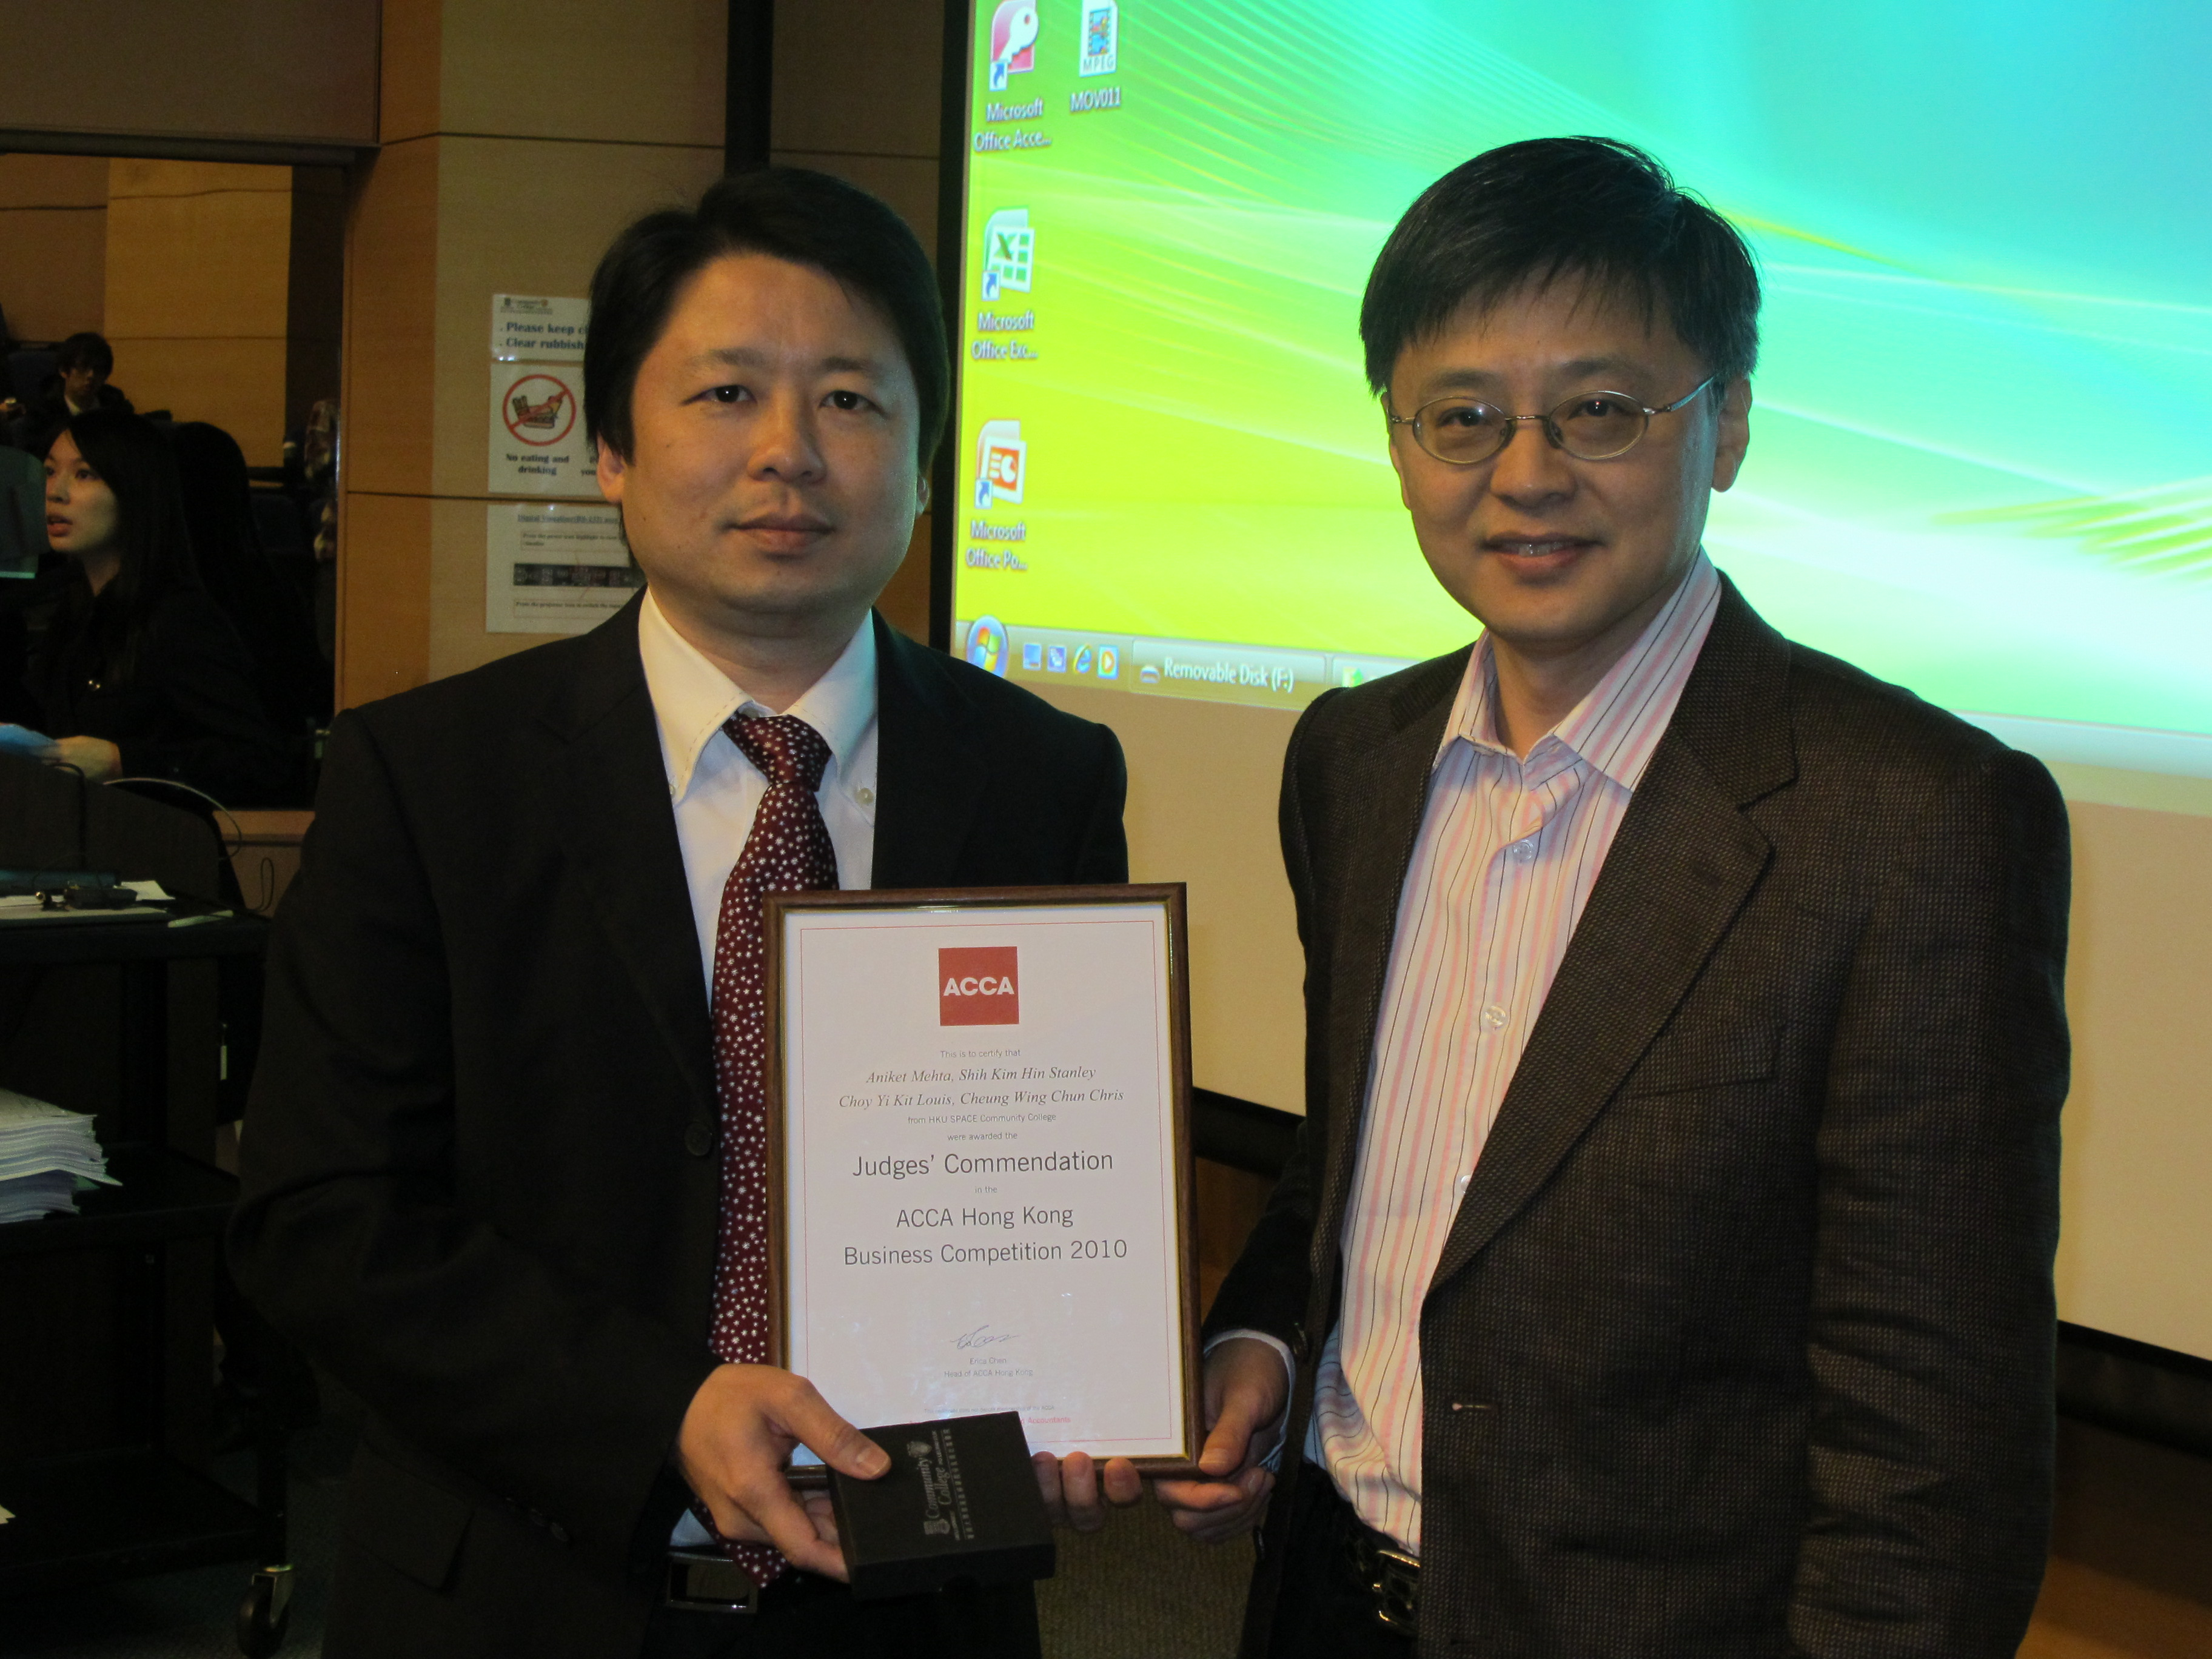 ACCA Hong Kong Business Competition 2010 - Photo - 19